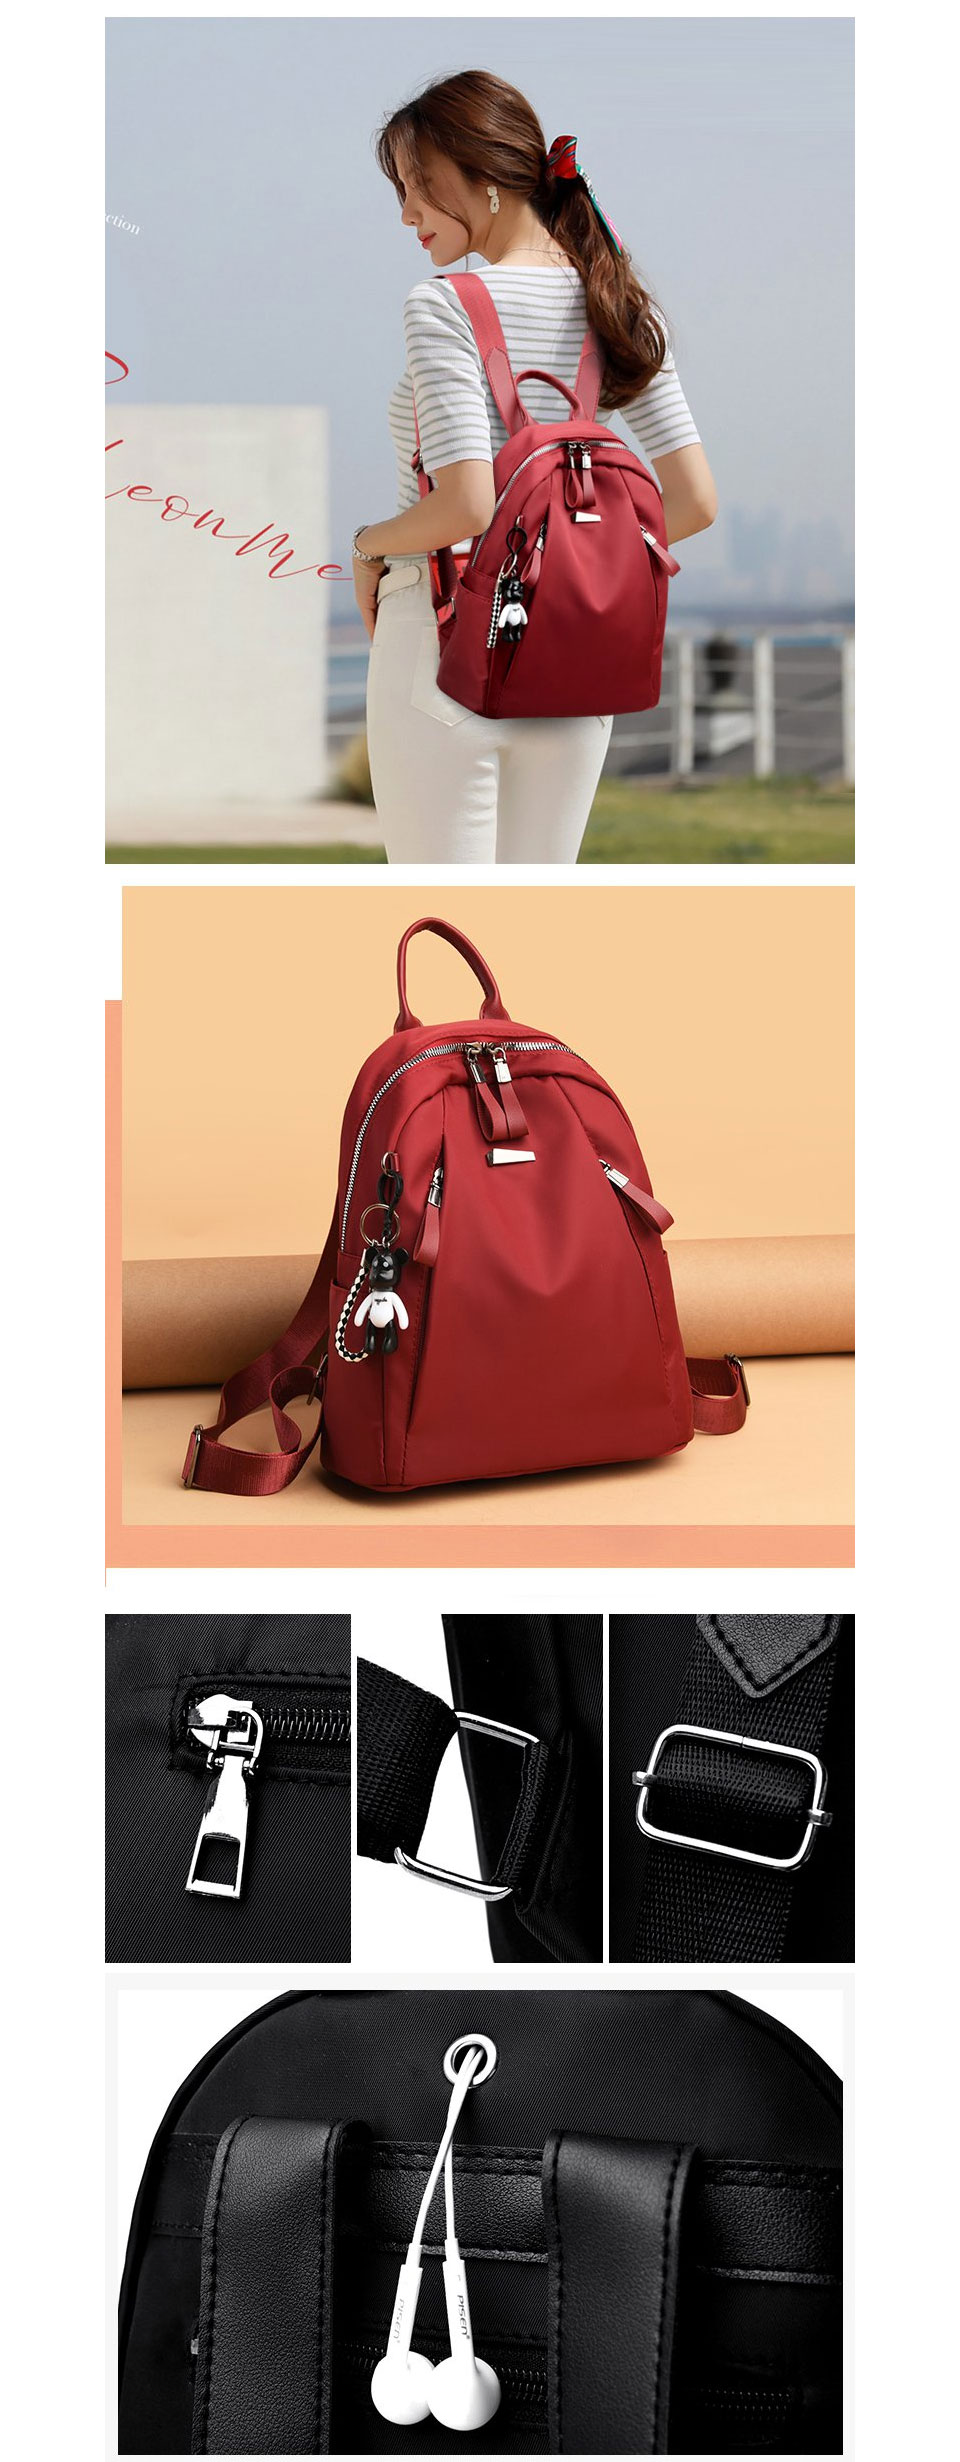 ACELURE Solid Color Large School Bags for Students Fashion High Capacity Backapcks for Women Men Teenagers Soft Polyester Bag